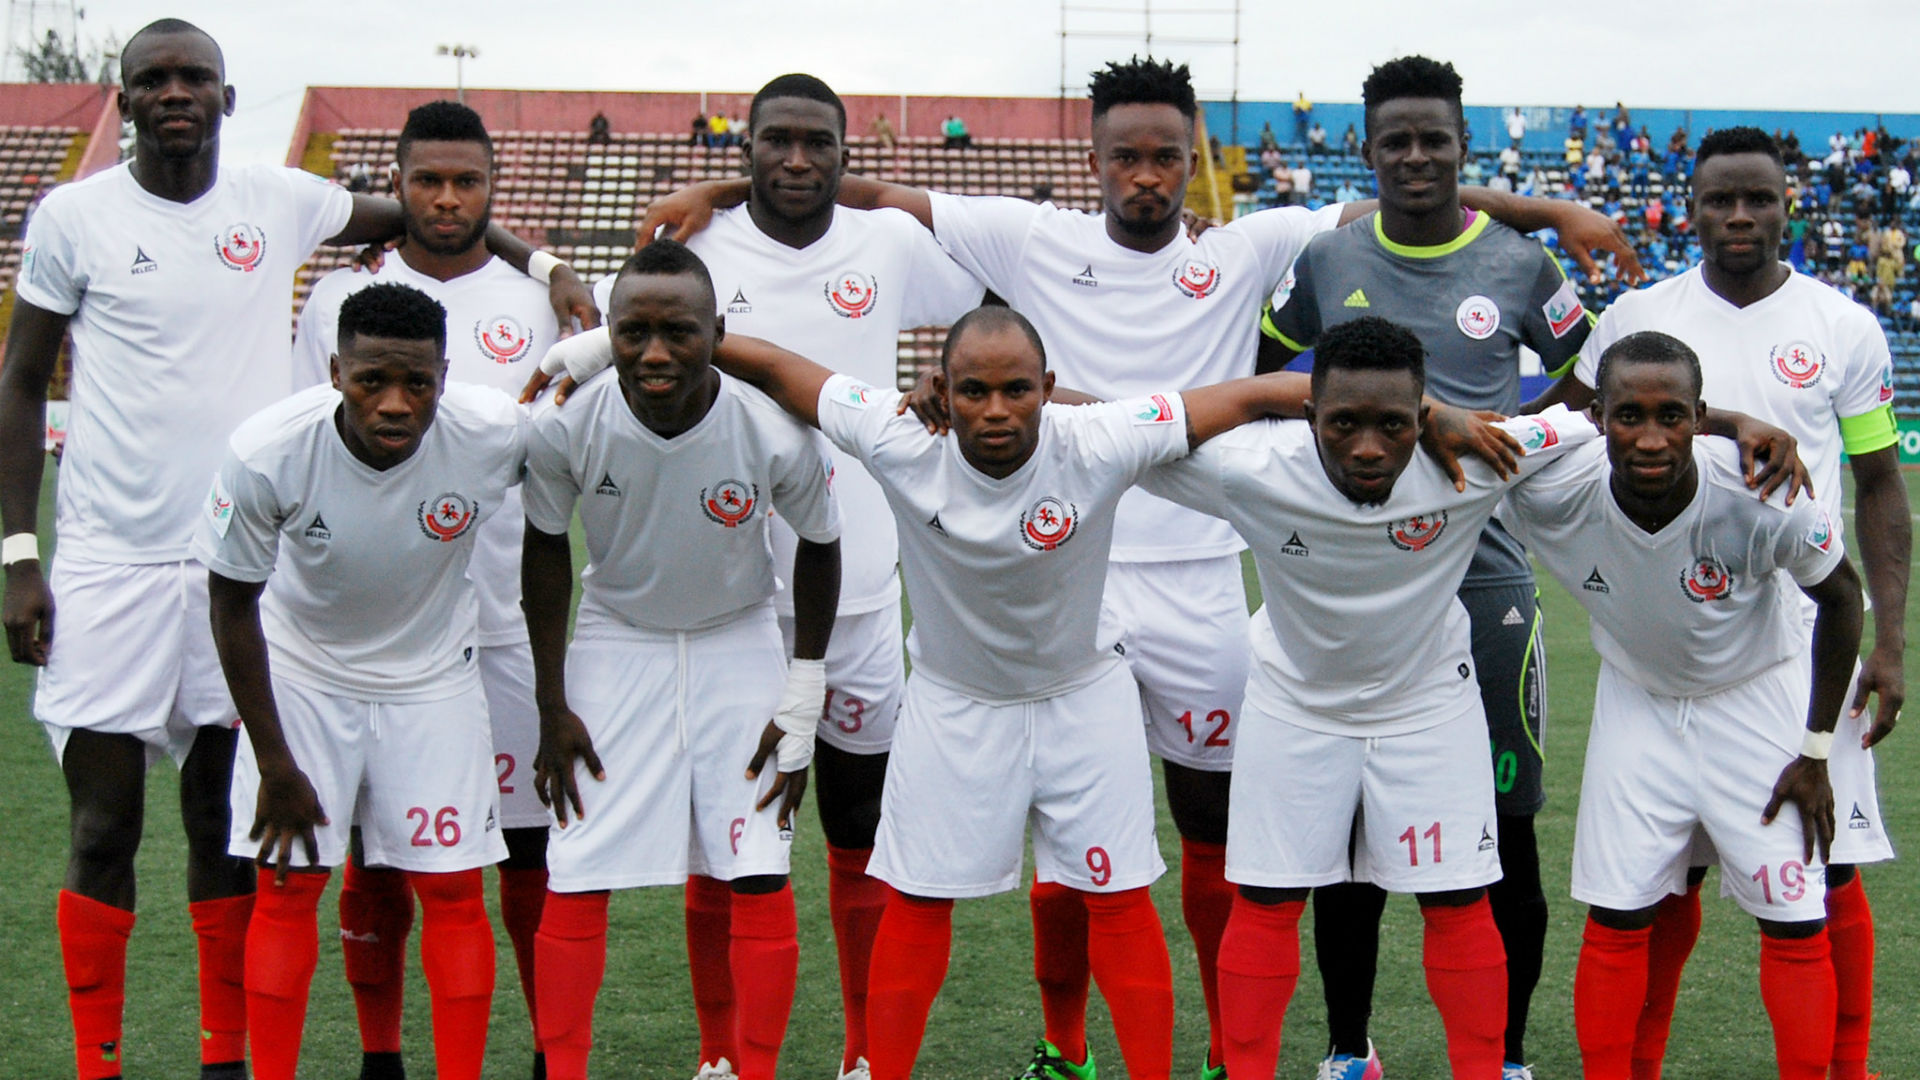 NPFL: Plateau Utd wear the crown